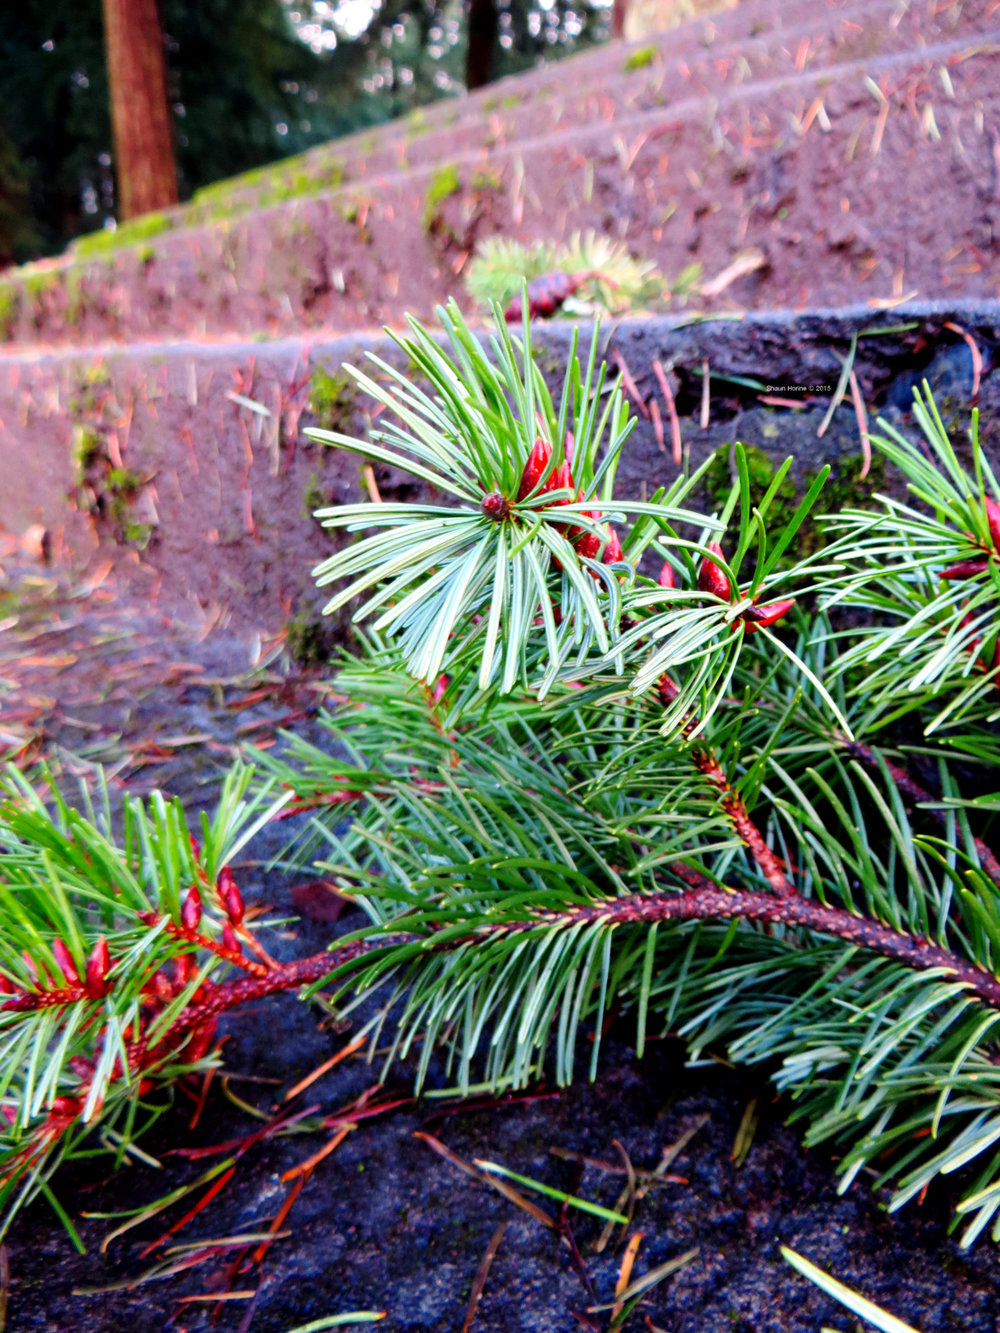 More evergreen goodness in Mt. Tabor Park, Portland OR.  Canon SX280 HS